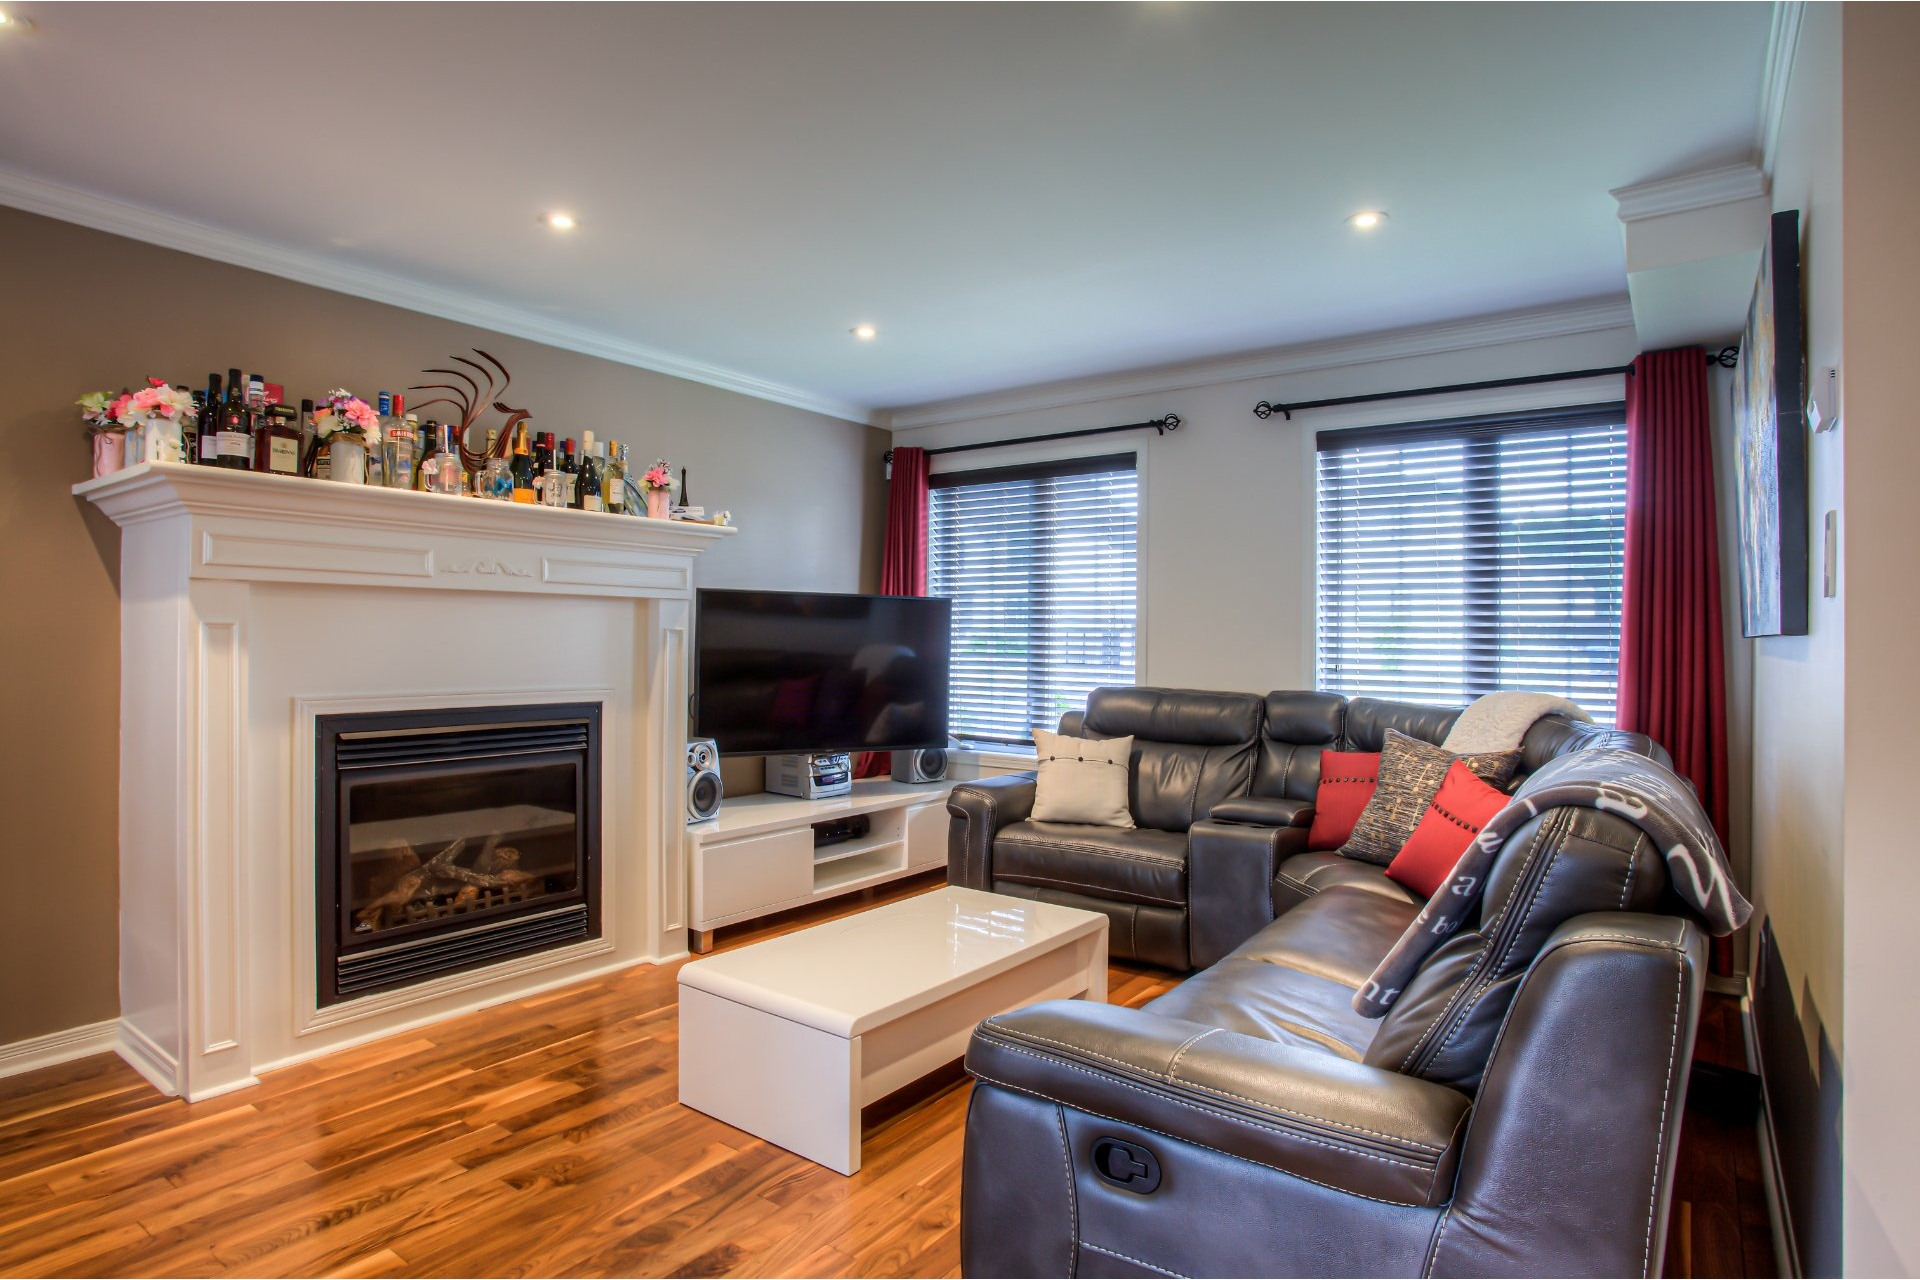 image 3 - House For sale Vaudreuil-Dorion - 9 rooms